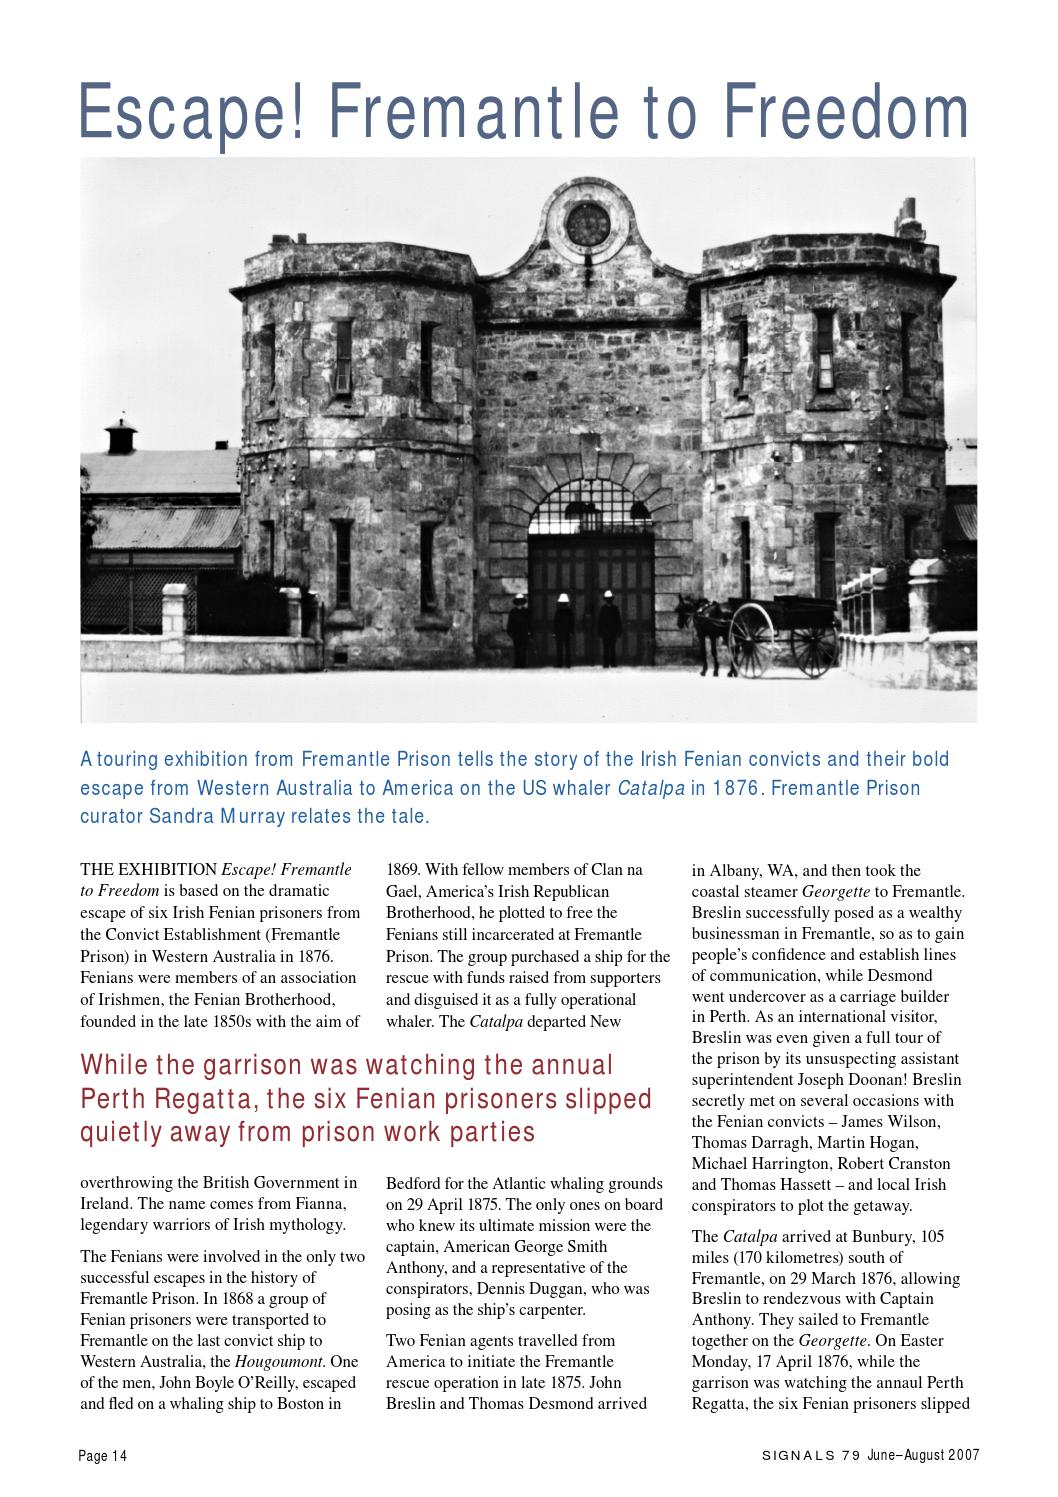 Signals, Issue 79 by Australian National Maritime Museum - issuu